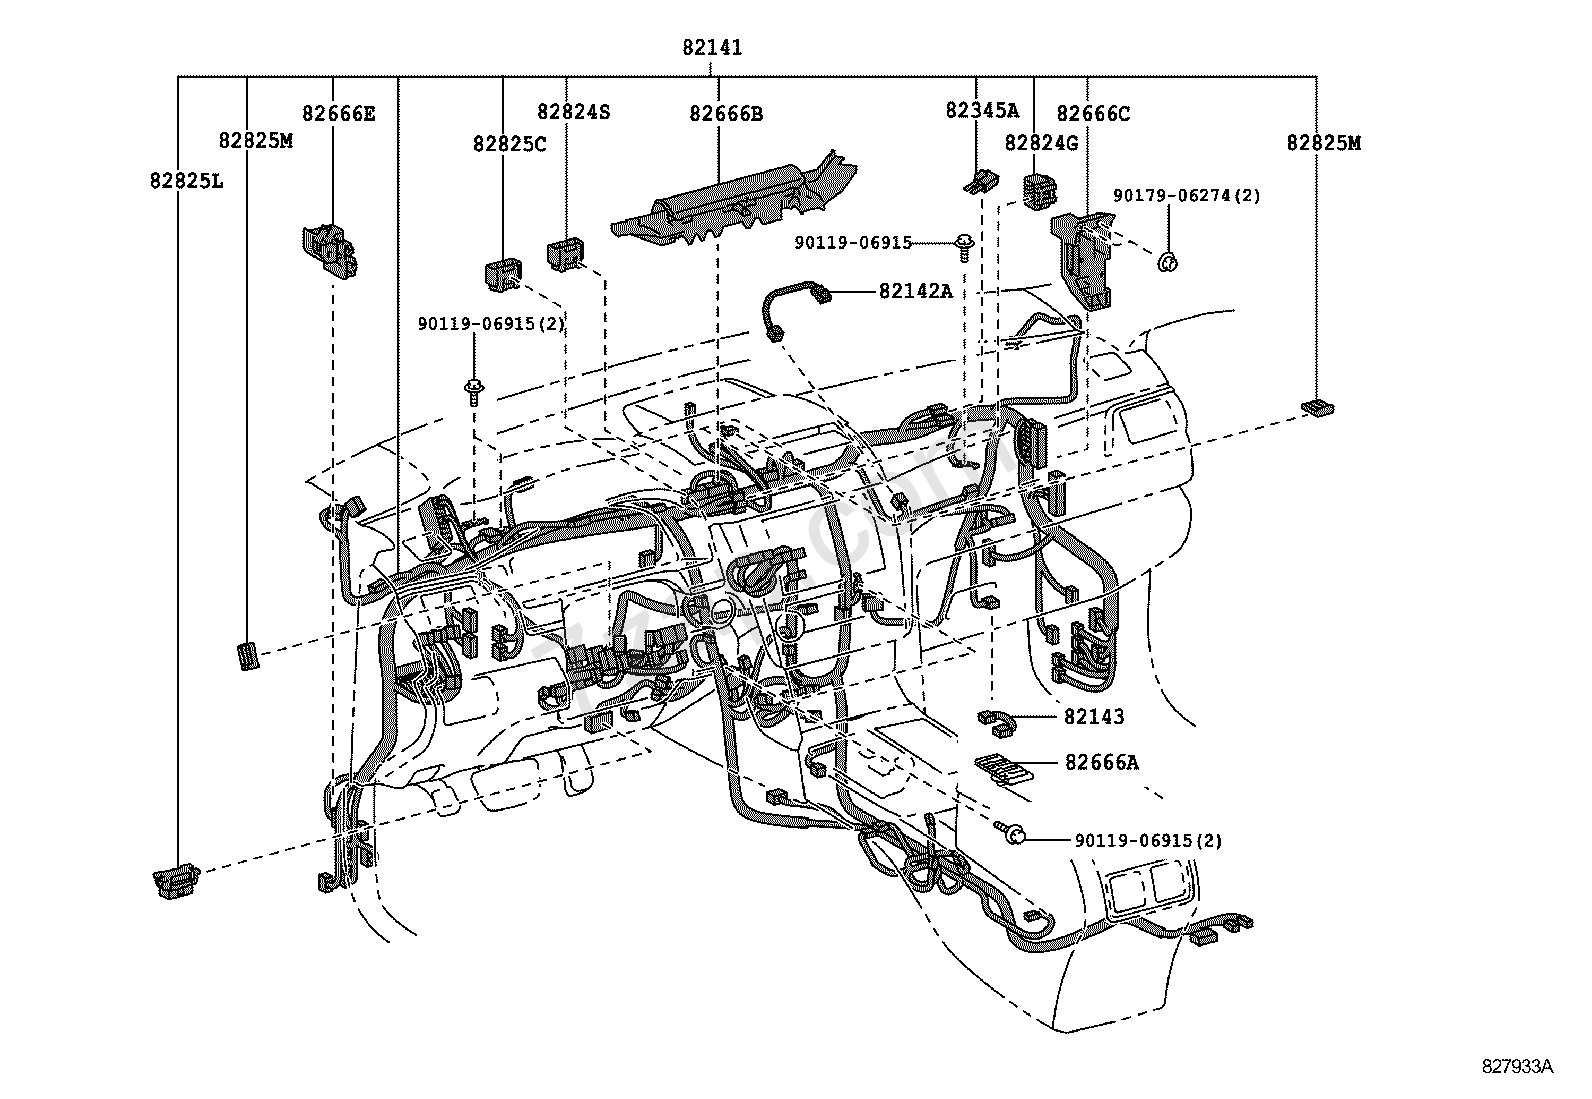 John Deere 2955 Wiring Diagram Images Of Home Design 2155 Free Picture 1955 50